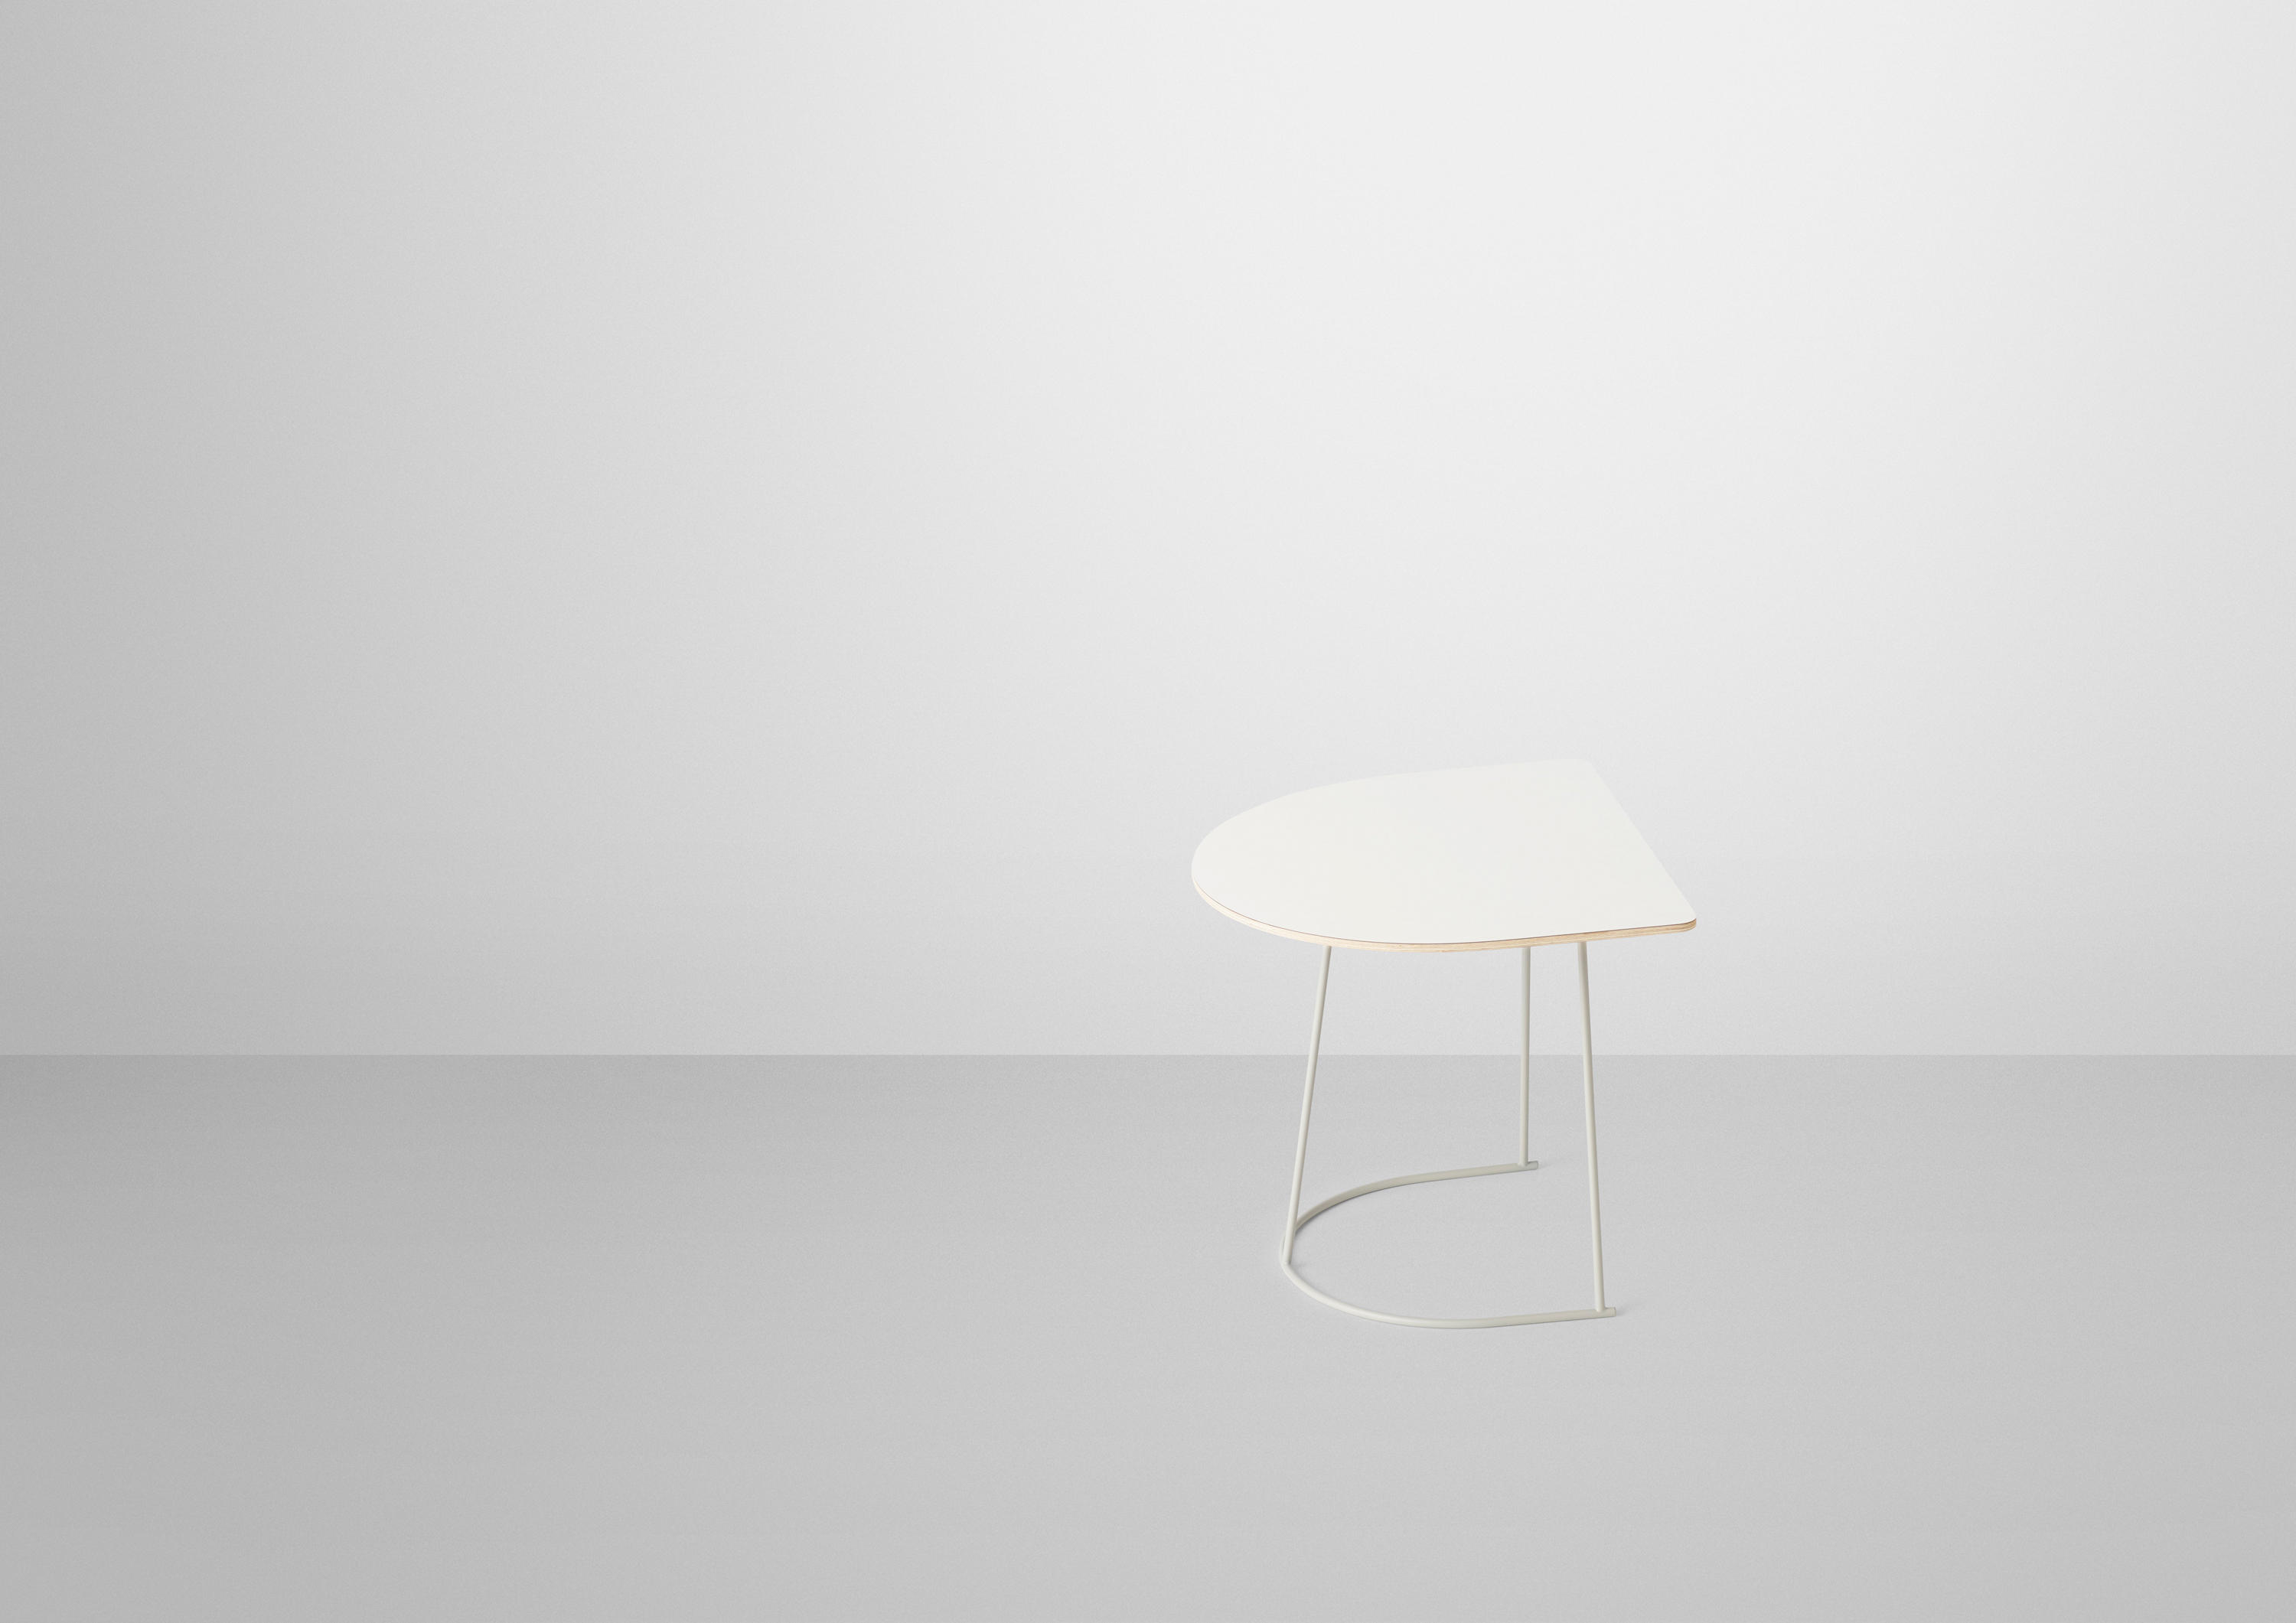 AIRY COFFEE TABLE HALF SIZE Side tables from Muuto